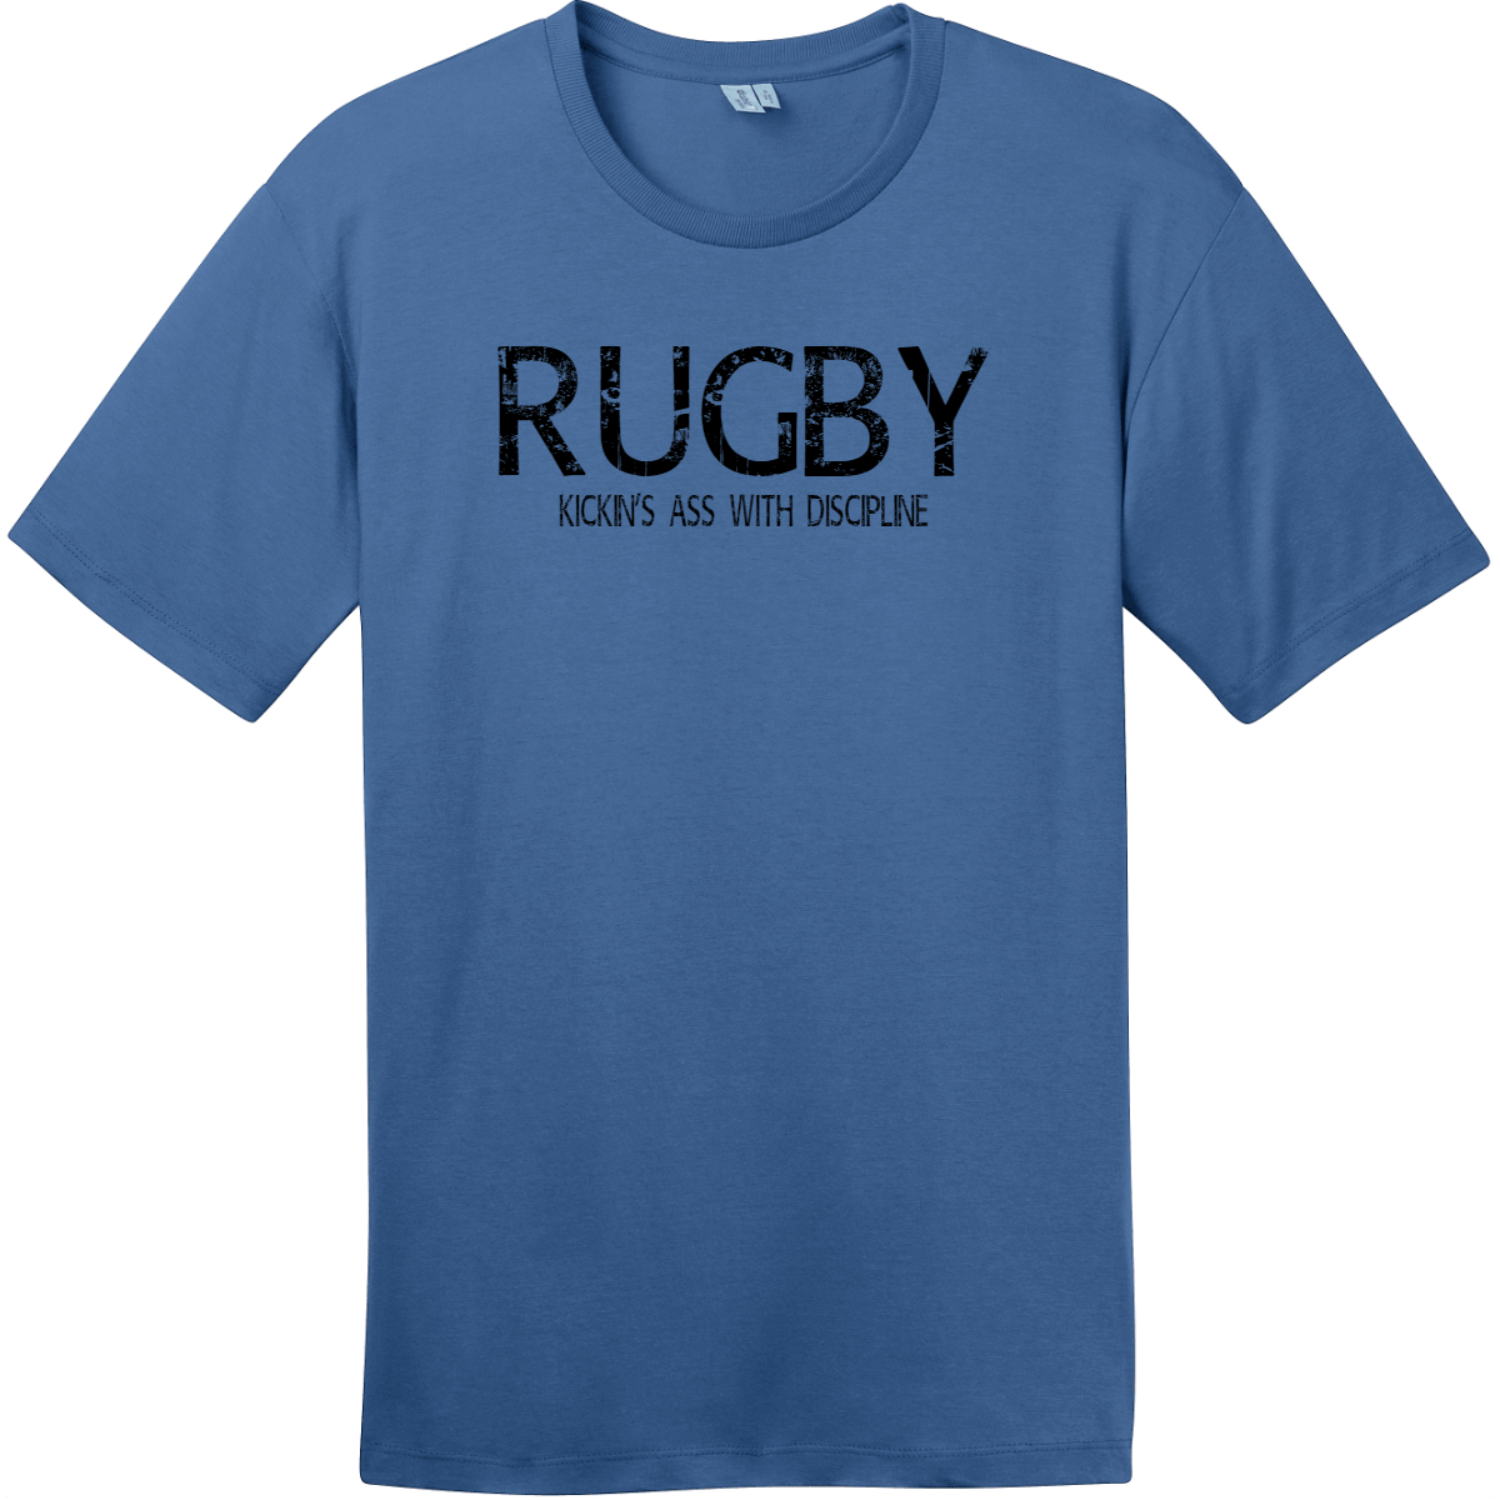 Rugby Kickin Ass With Discipline T-Shirt Maritime Blue District Perfect Weight Tee DT104